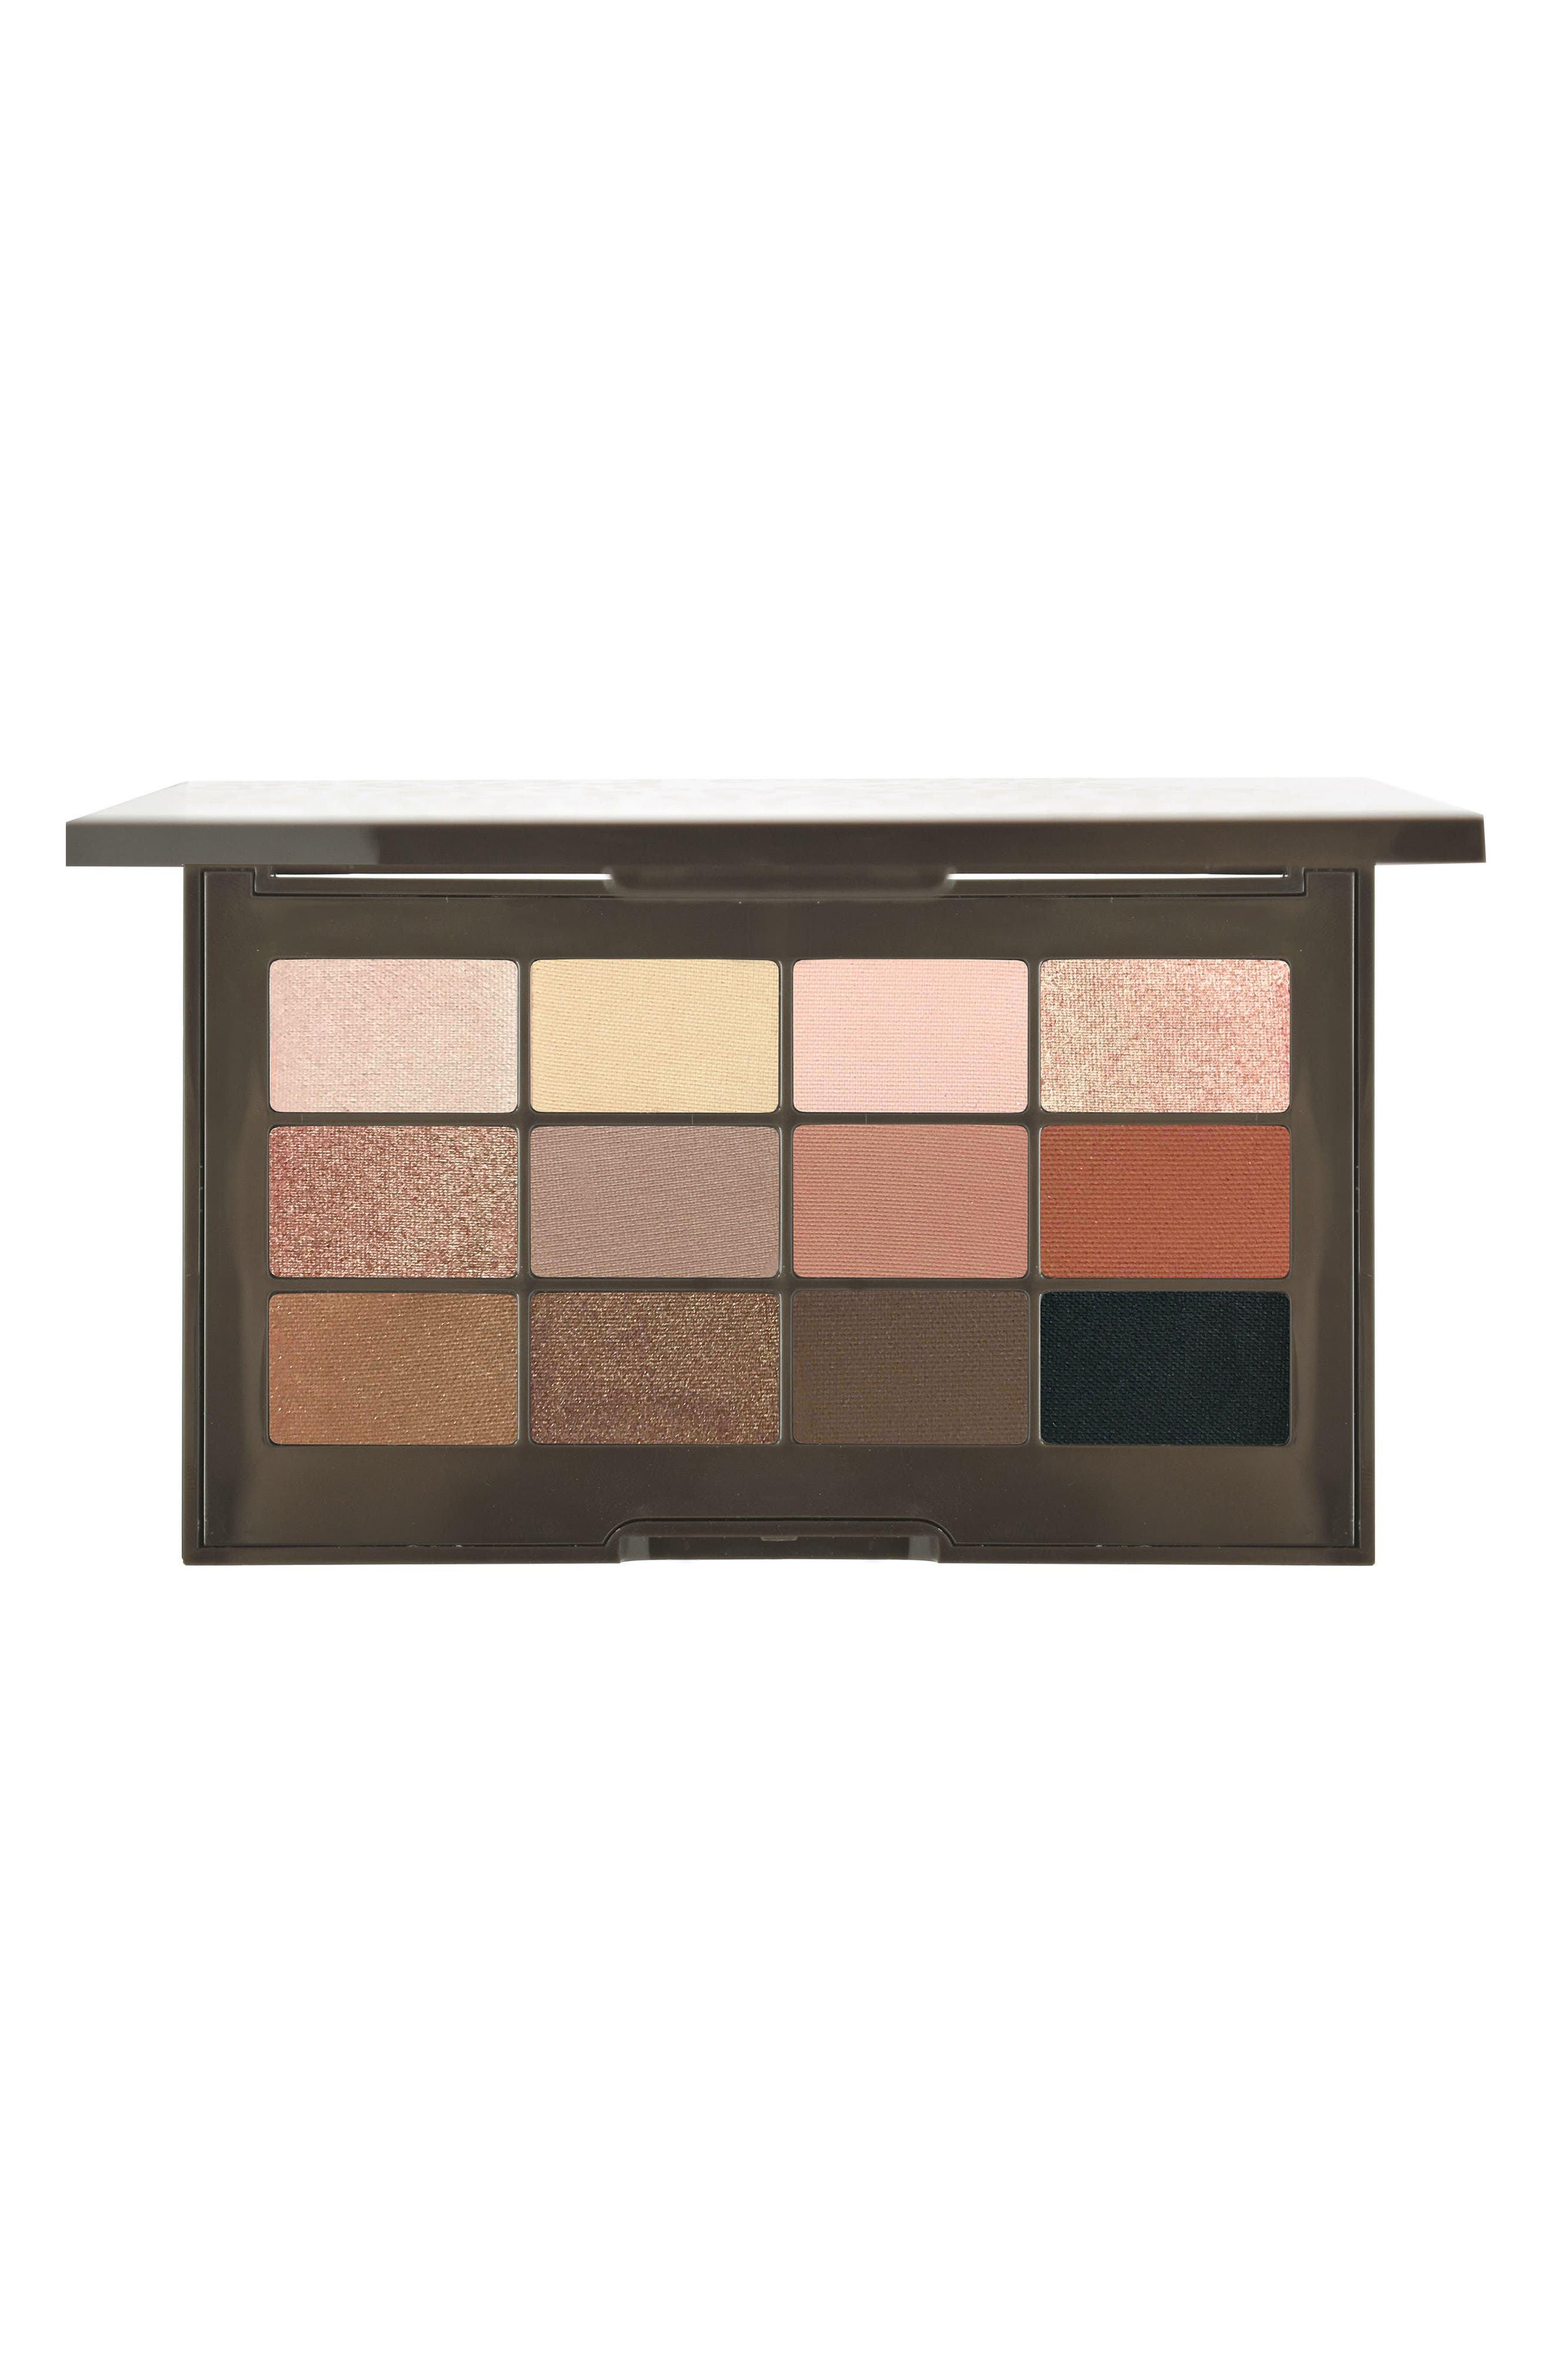 Essential Matte & Shimmer Eyeshadow Palette,                             Main thumbnail 1, color,                             NO COLOR